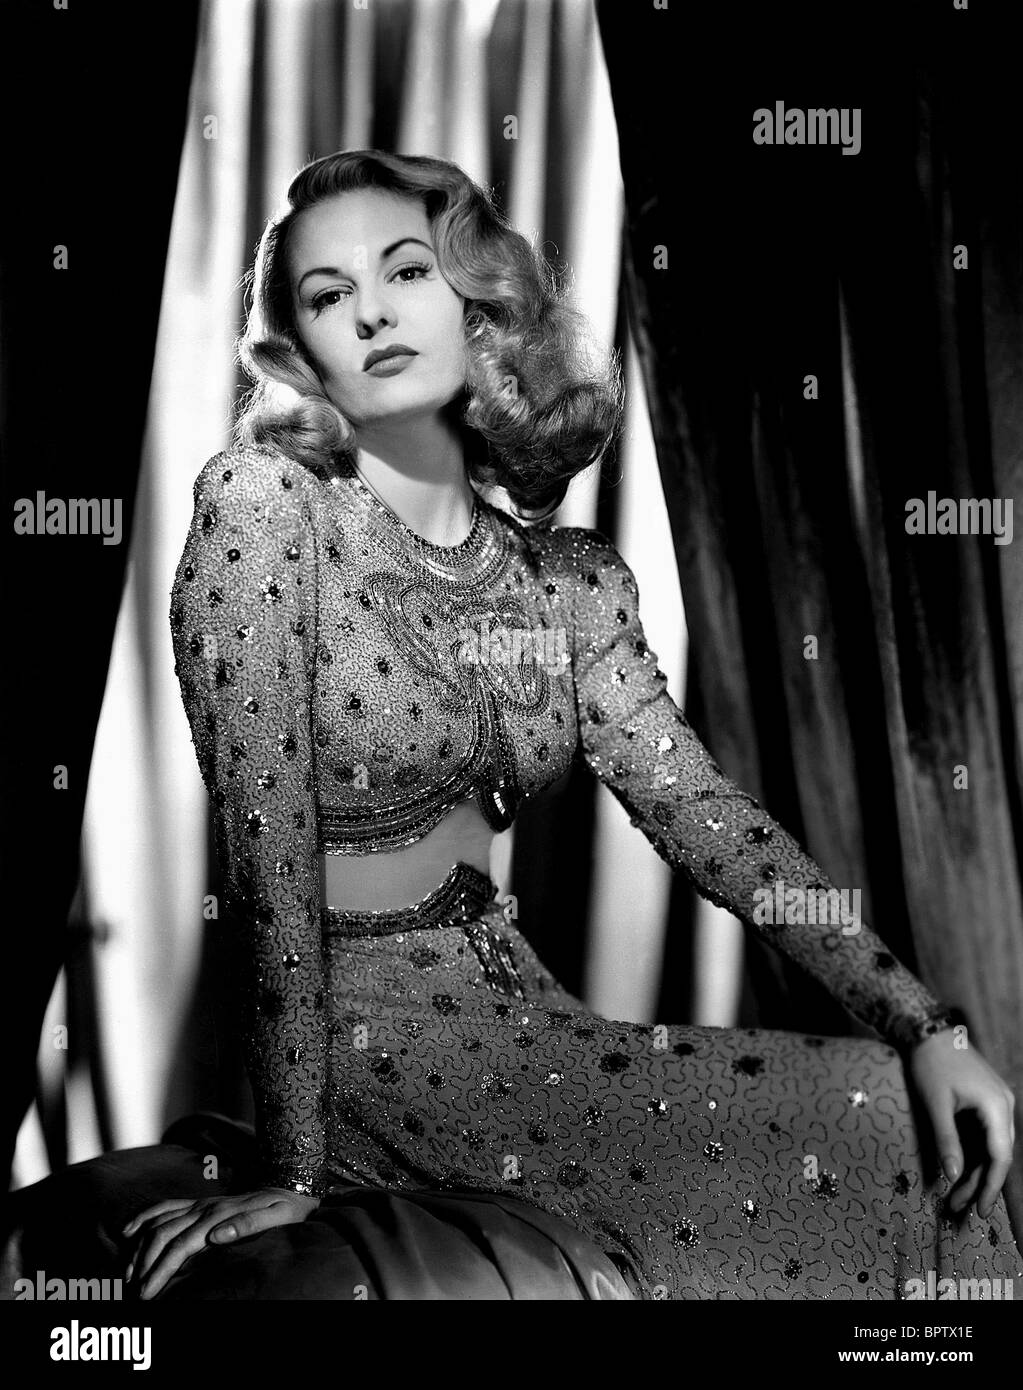 SALLY GRAY ACTRESS (1946) - Stock Image